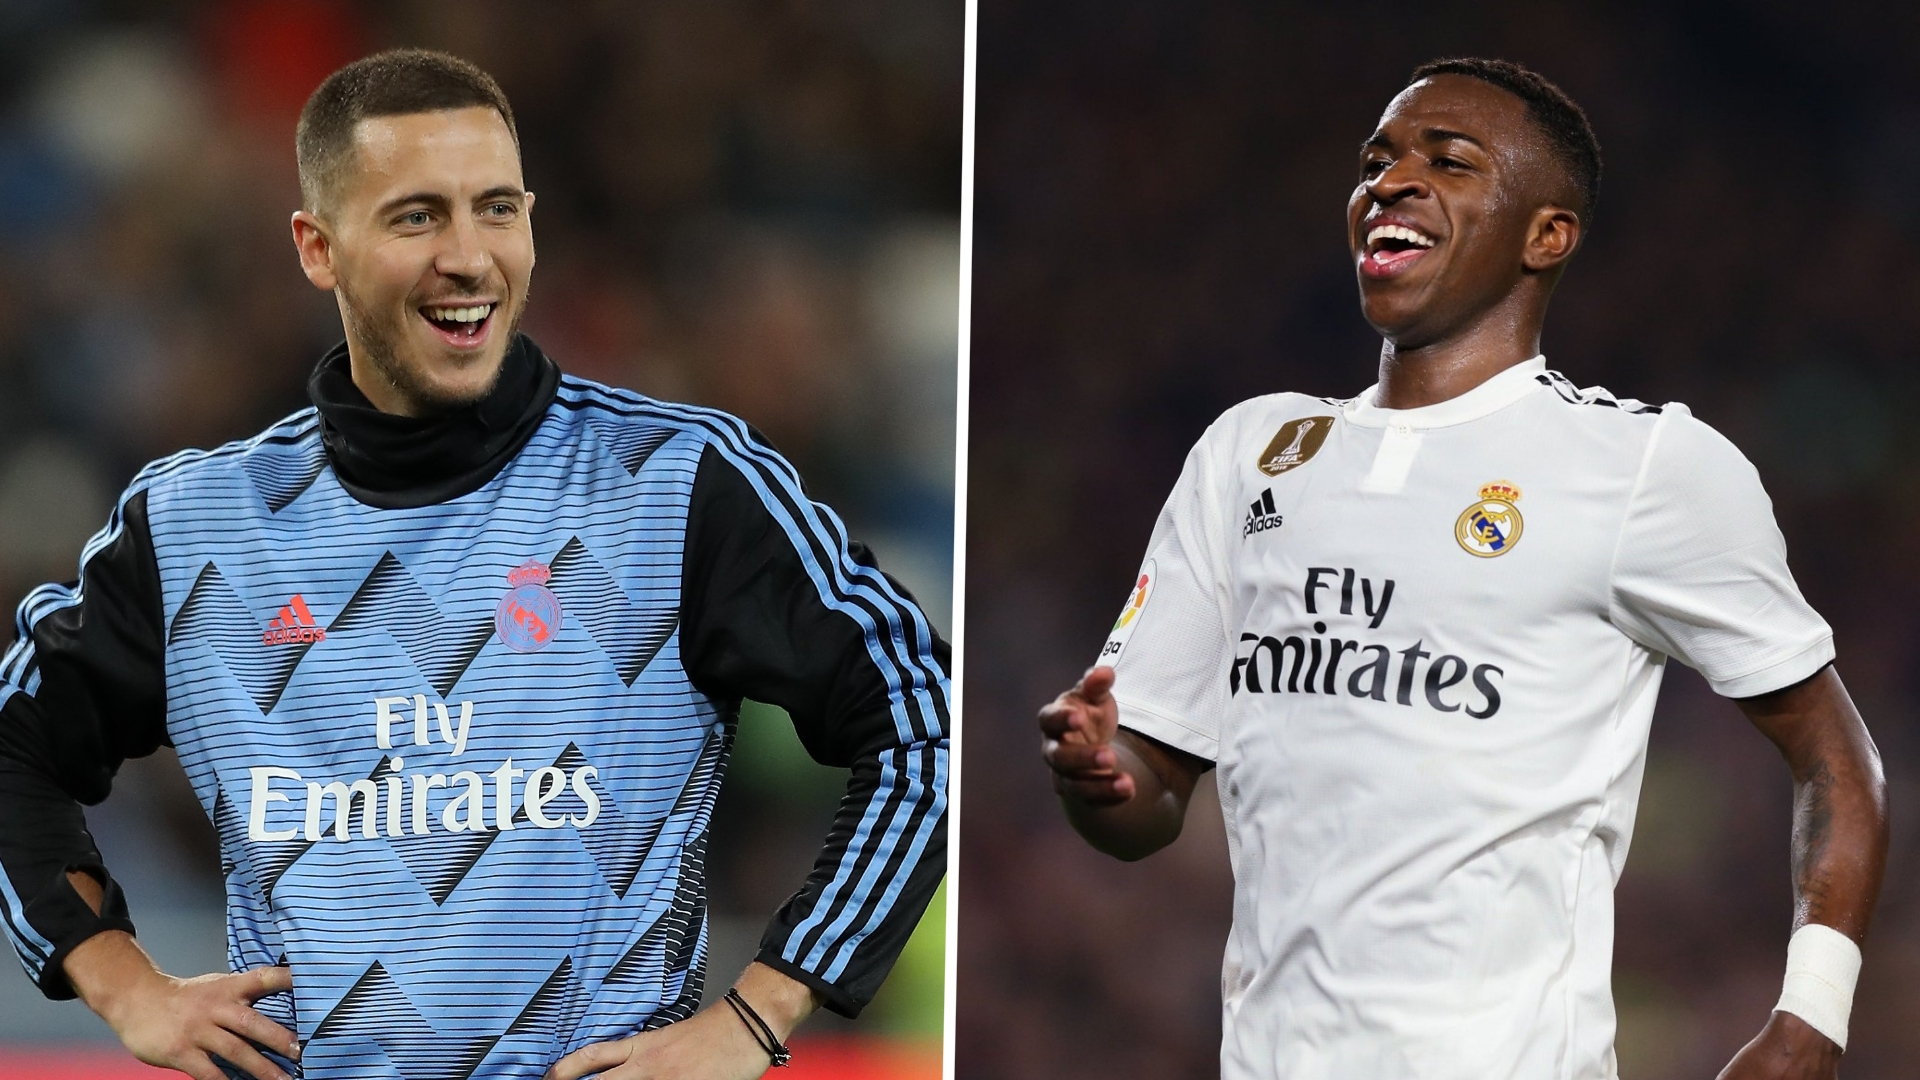 Vinicius savours chance to play with Hazard at Real Madrid